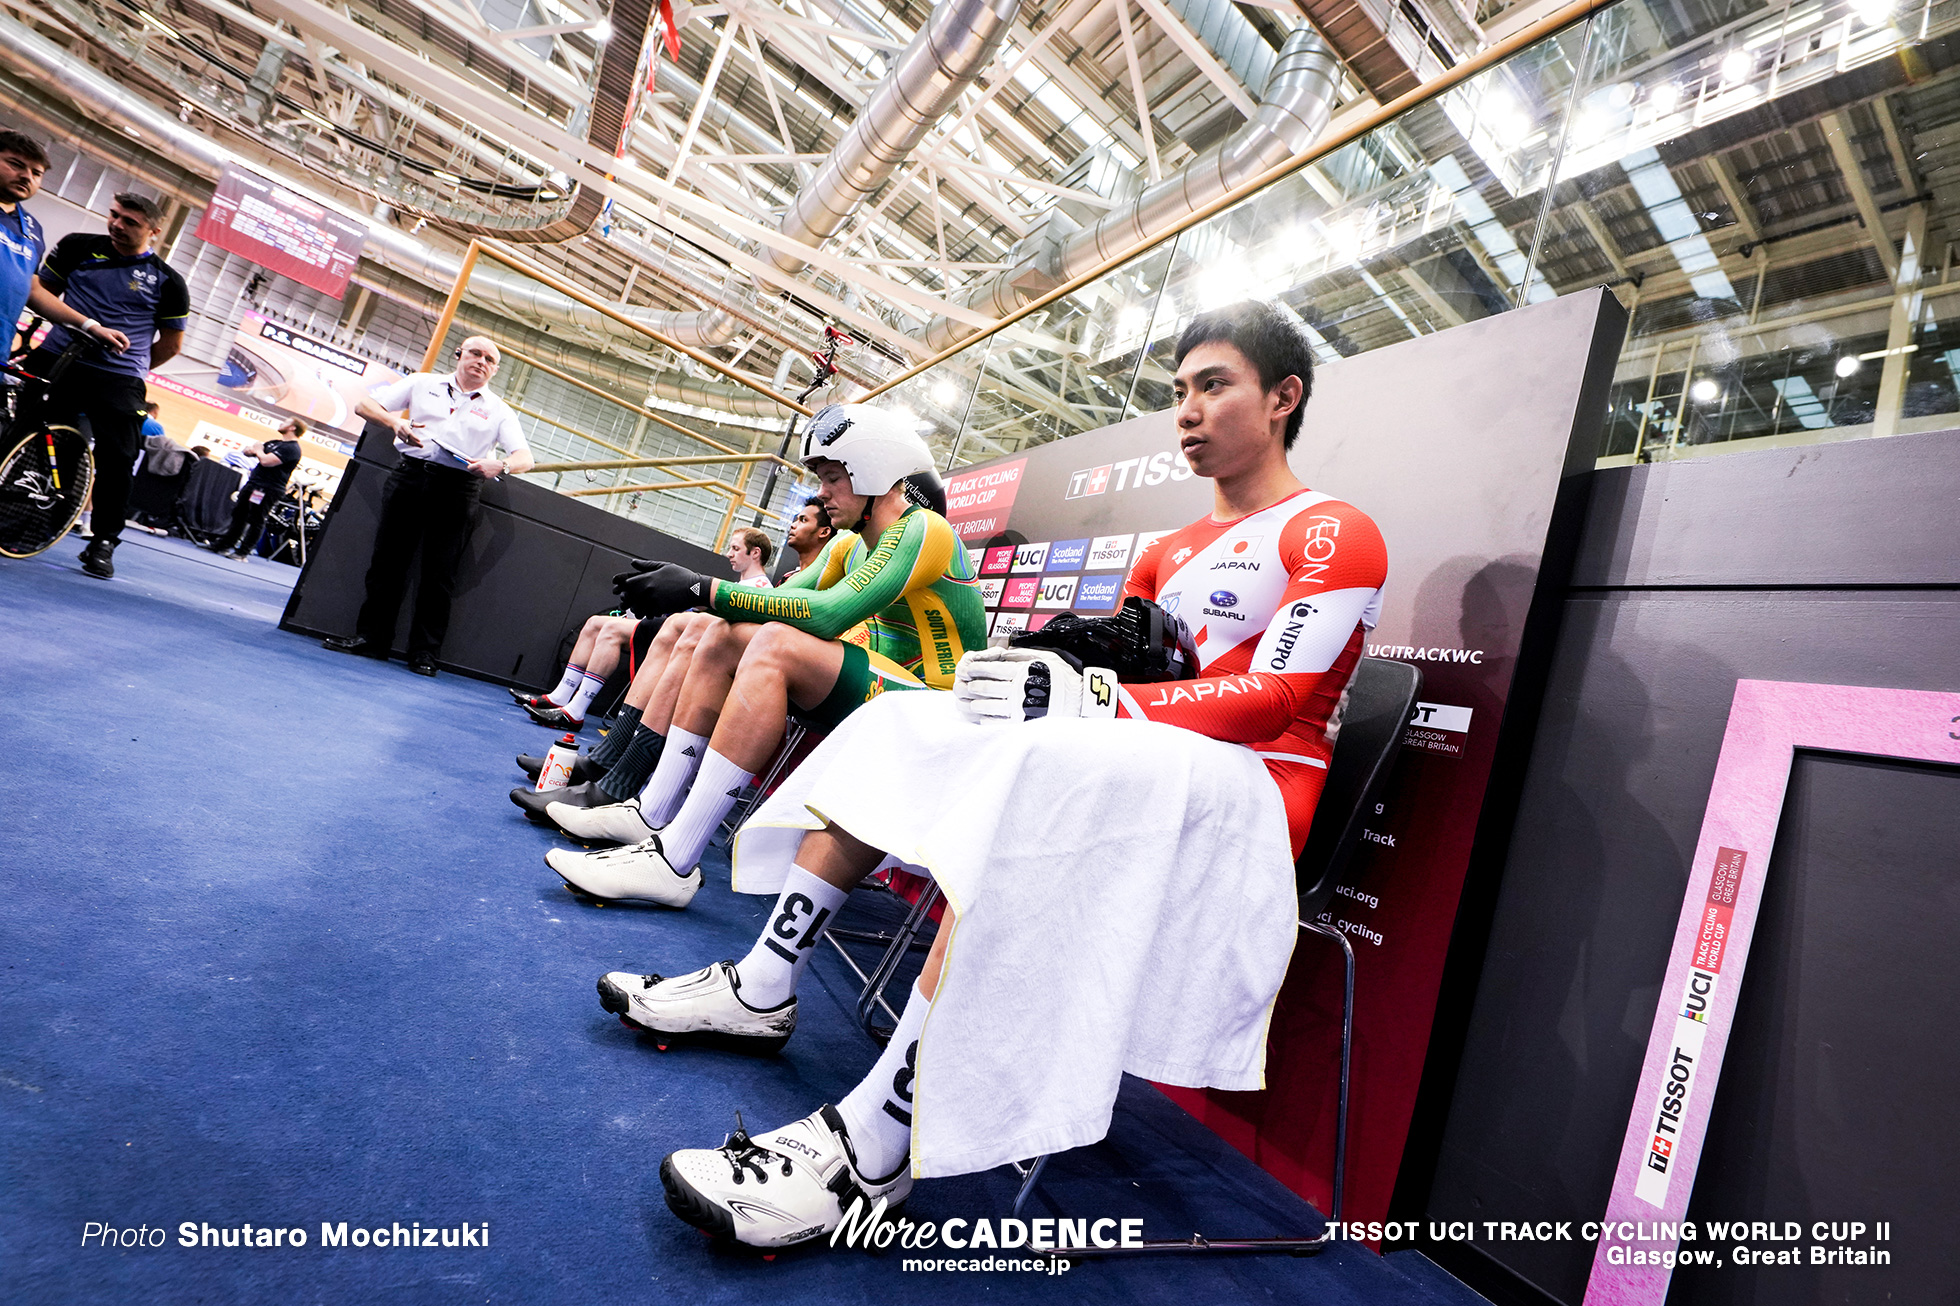 Repechage / Men's Keirin / TISSOT UCI TRACK CYCLING WORLD CUP II, Glasgow, Great Britain, 小原佑太